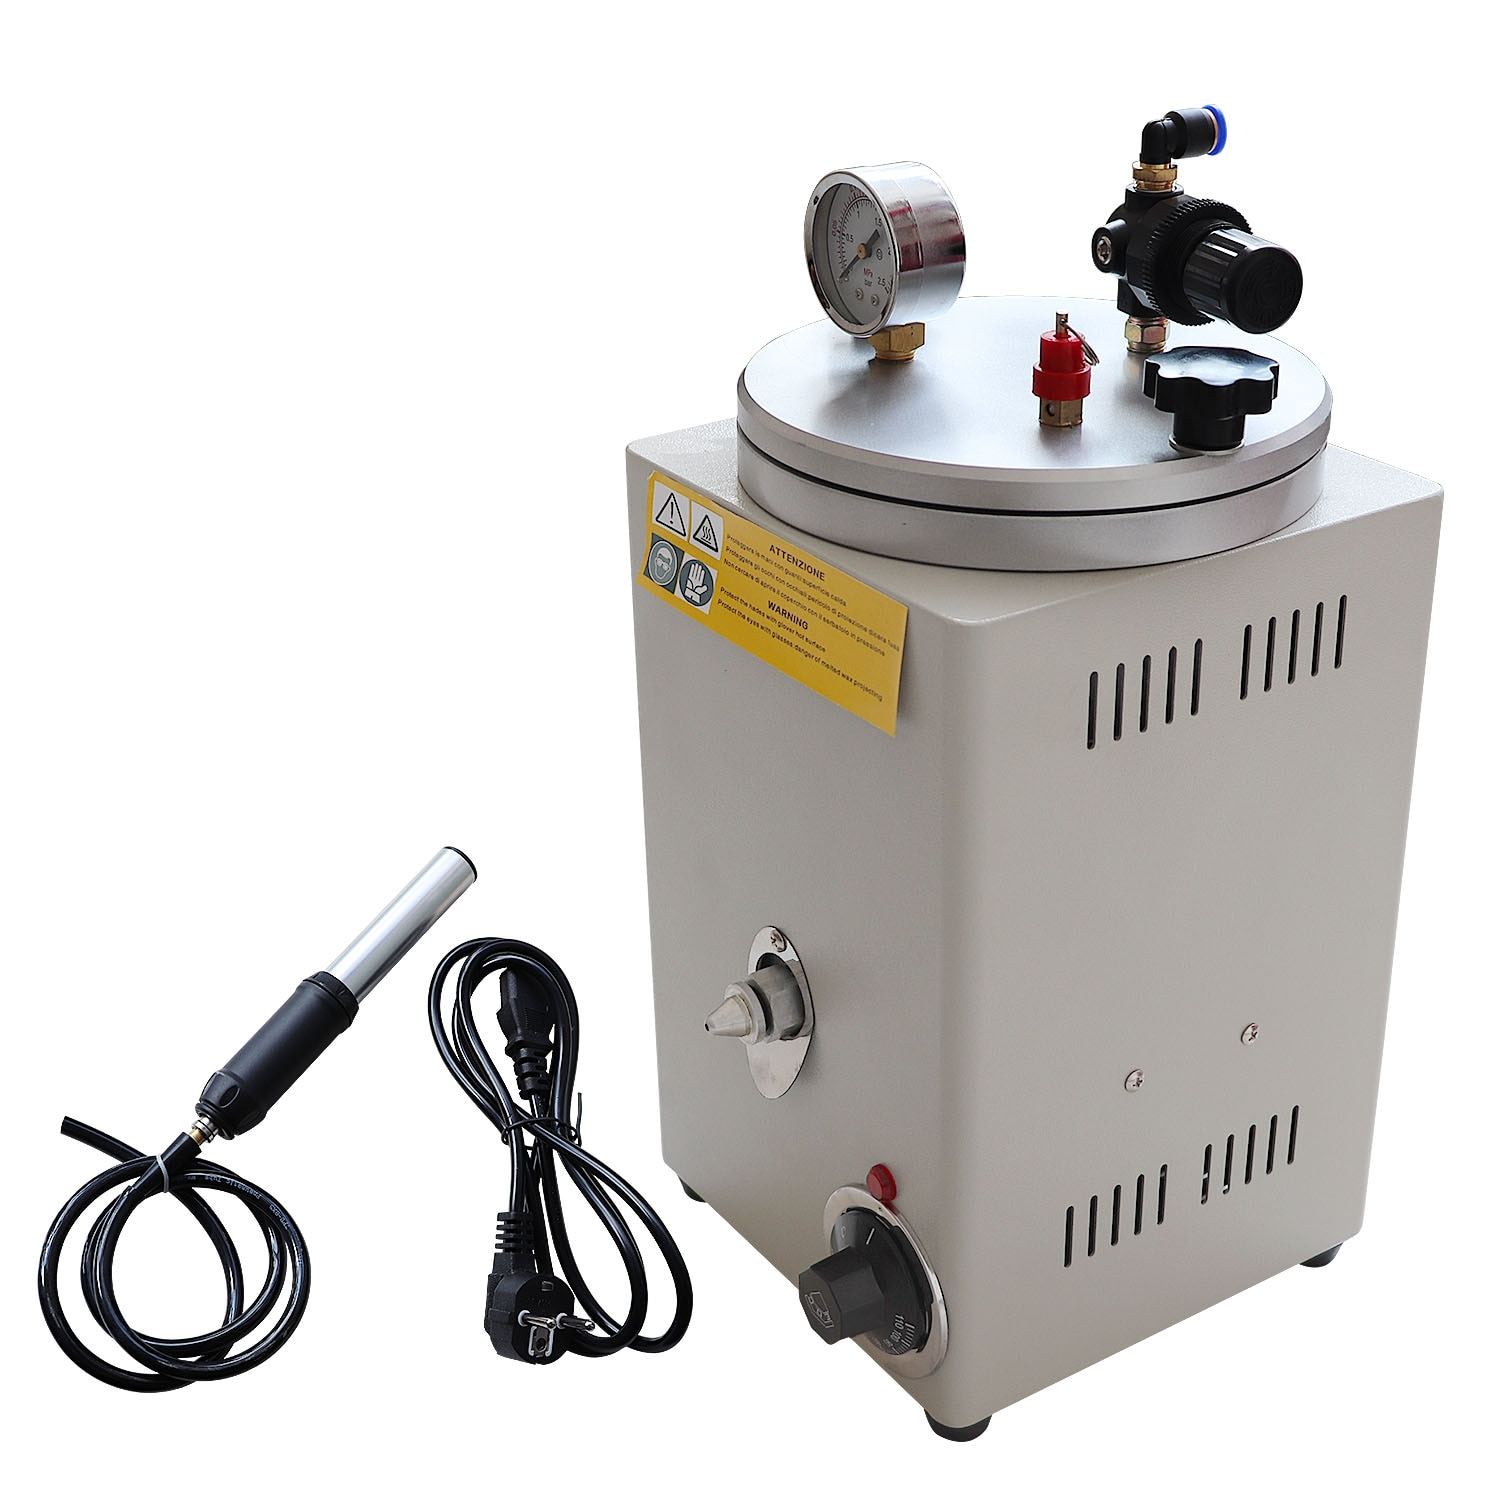 Pump Injection Wax Machine Jewelry Processing Equipment Casting Version  Jewellers jewellery tools